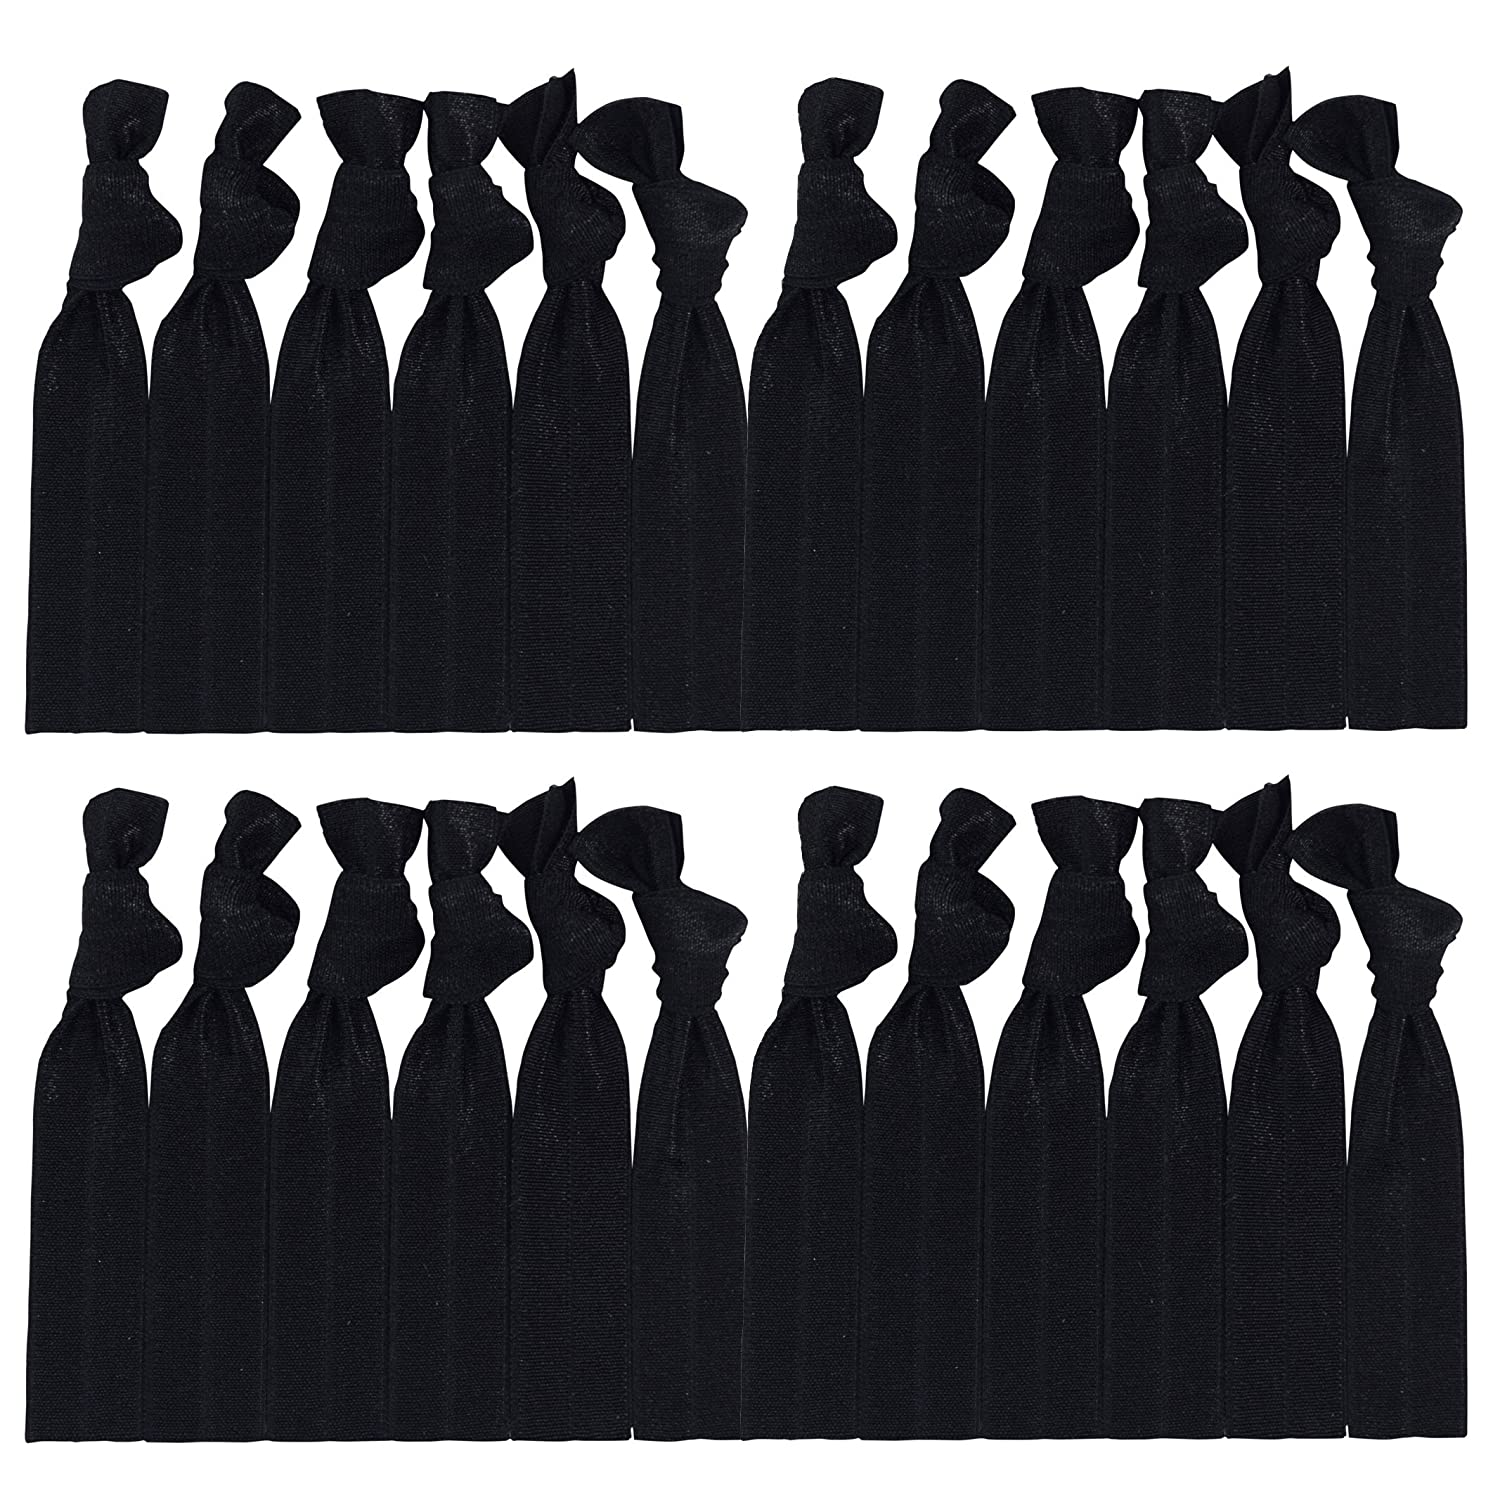 Cyndibands Black Hair Ties No-Snag Knotted Ponytail Holders/Bracelets - 25 Count